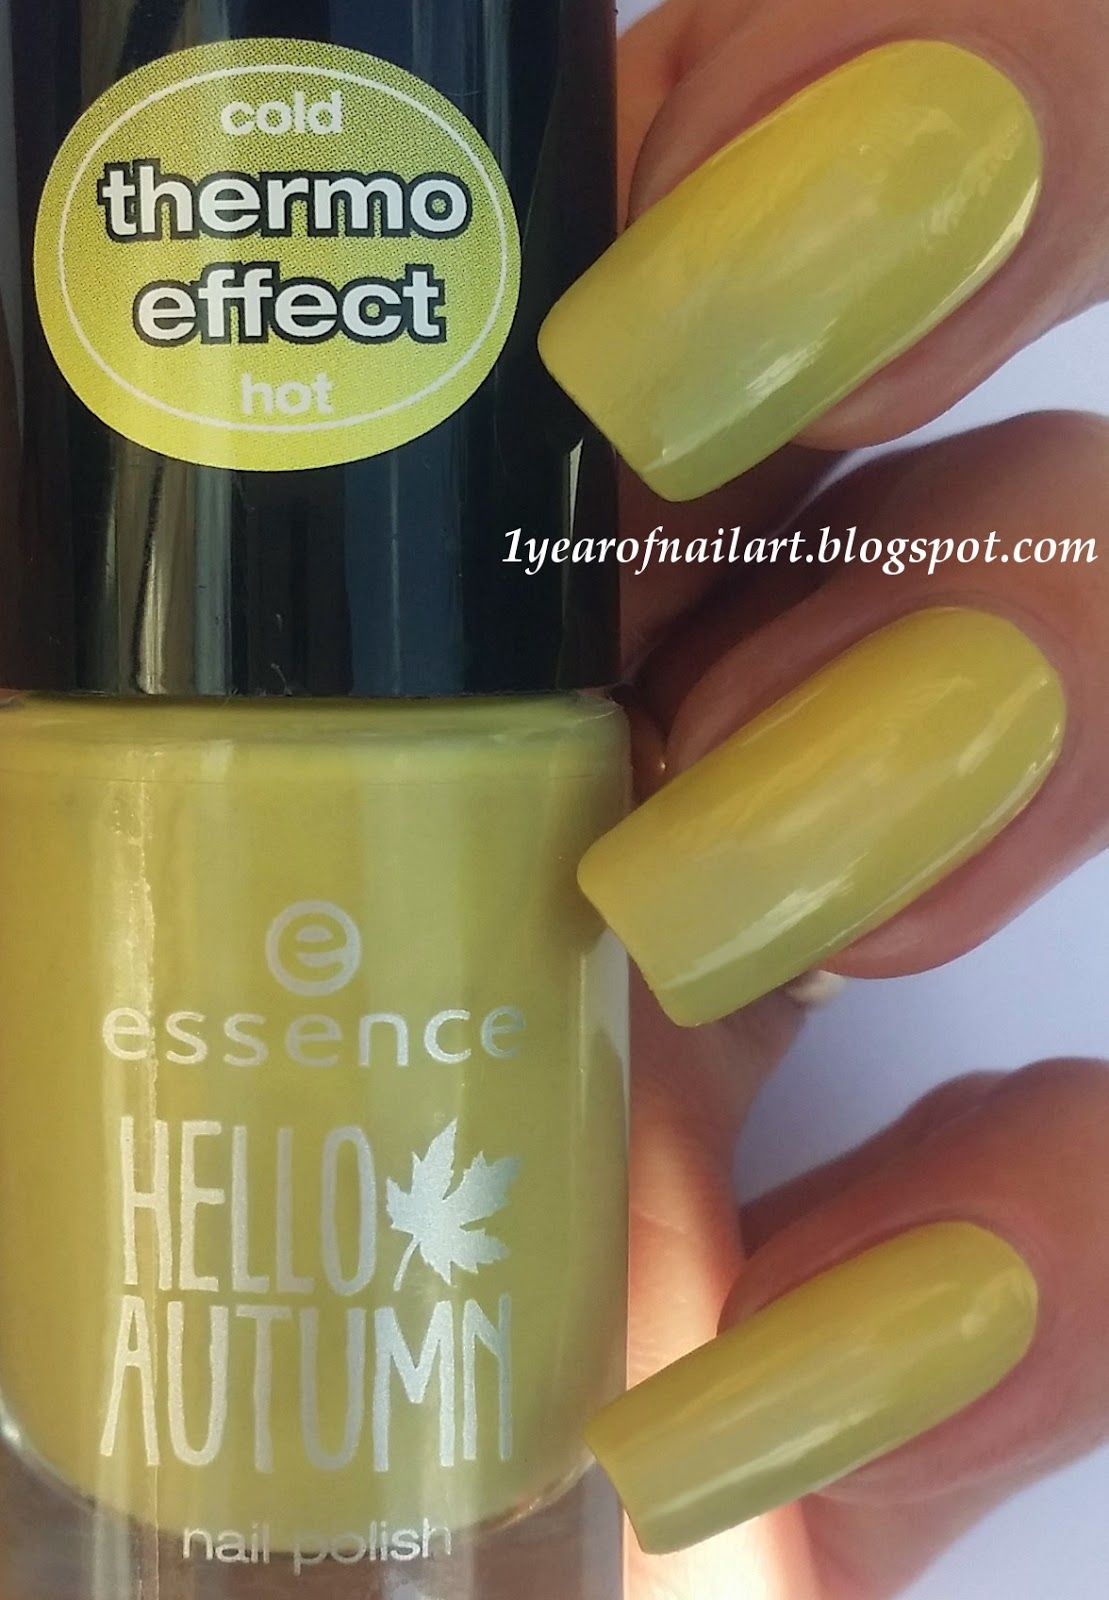 Essence Charlie seen in green